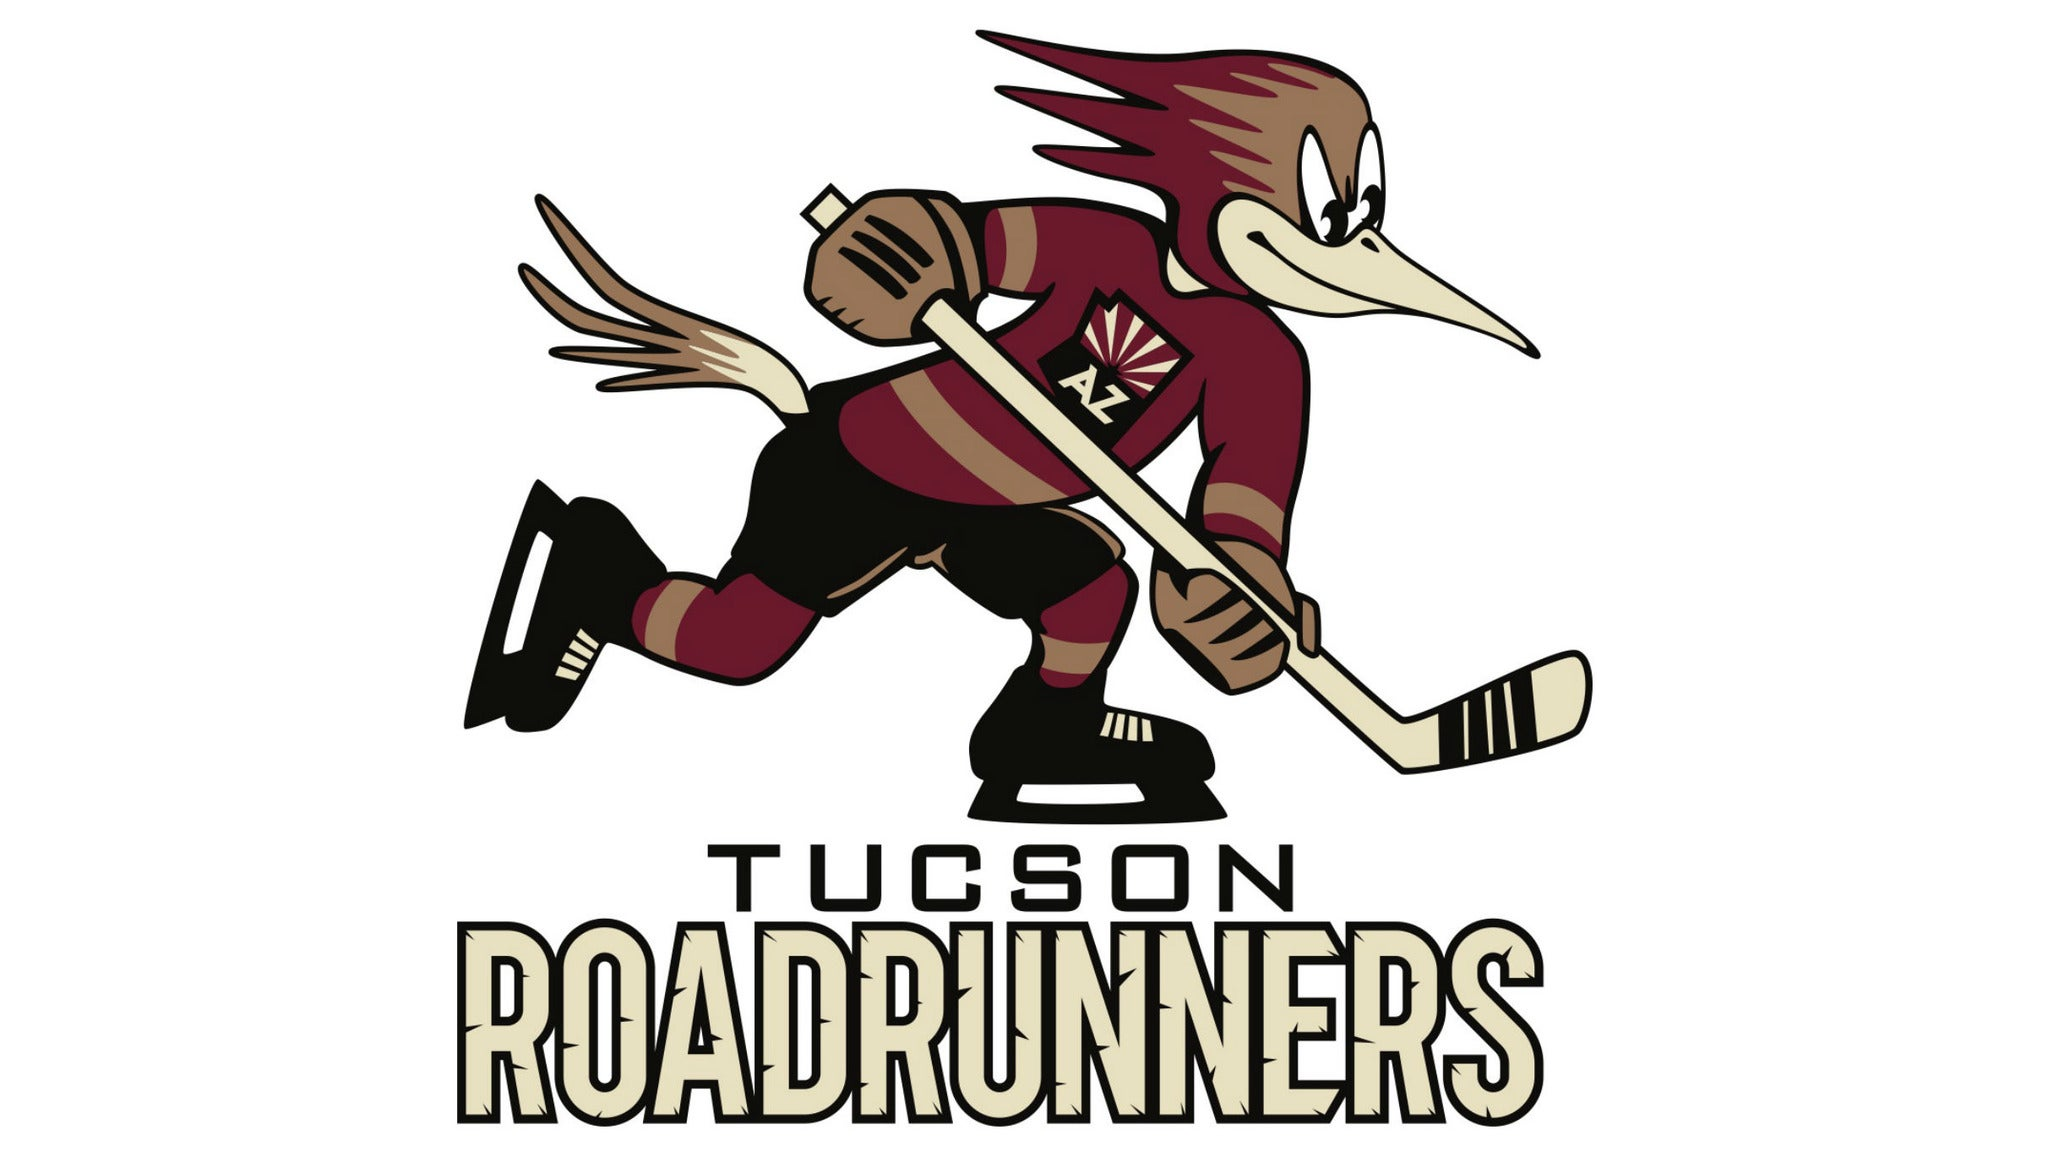 Tucson Roadrunners vs Stockton Heat at Tucson Arena